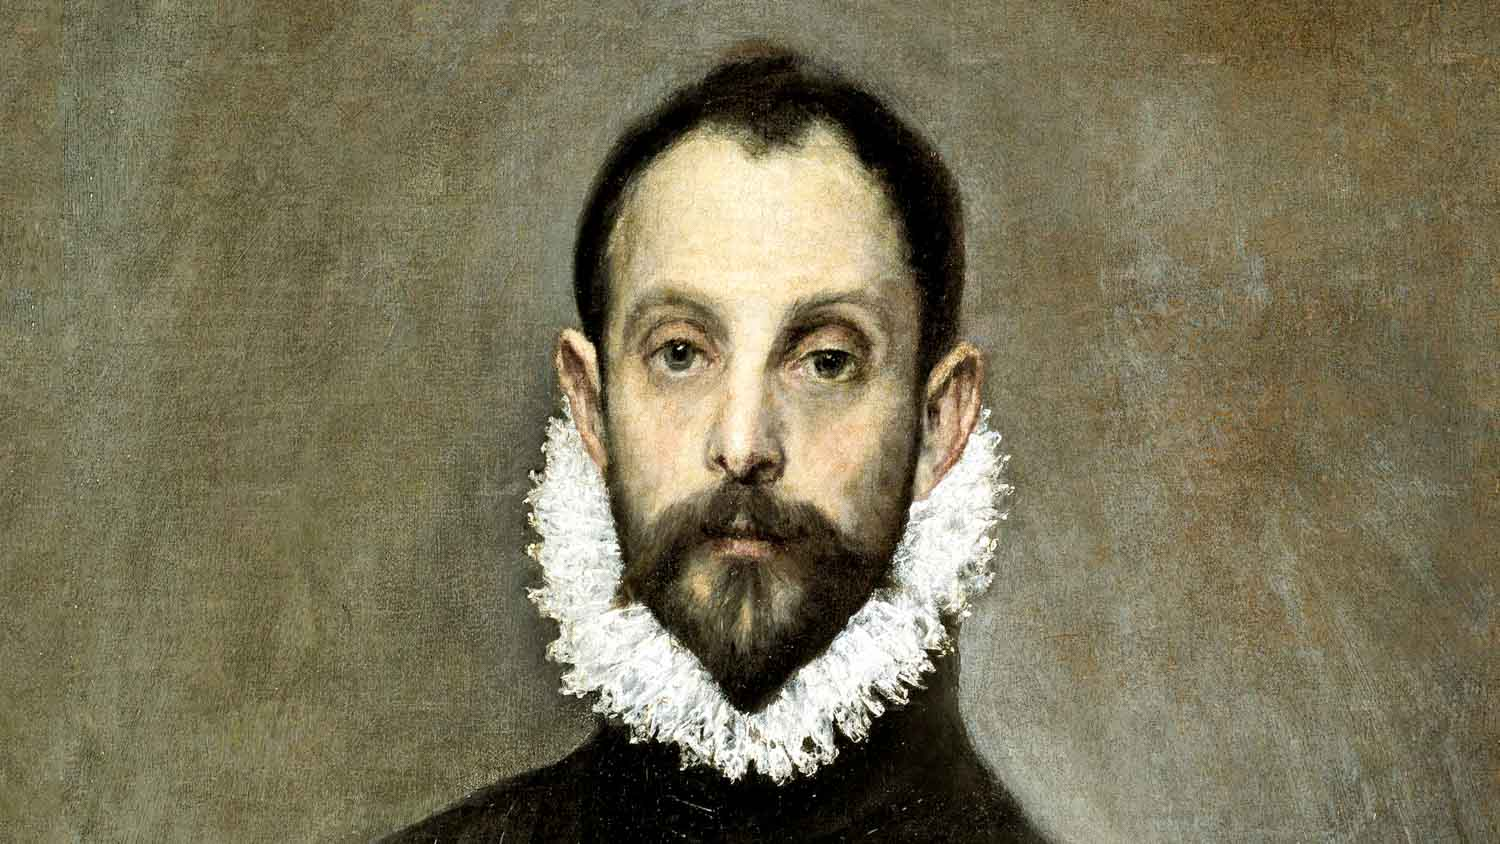 The Nobleman with His Hand on His Chest, El Greco